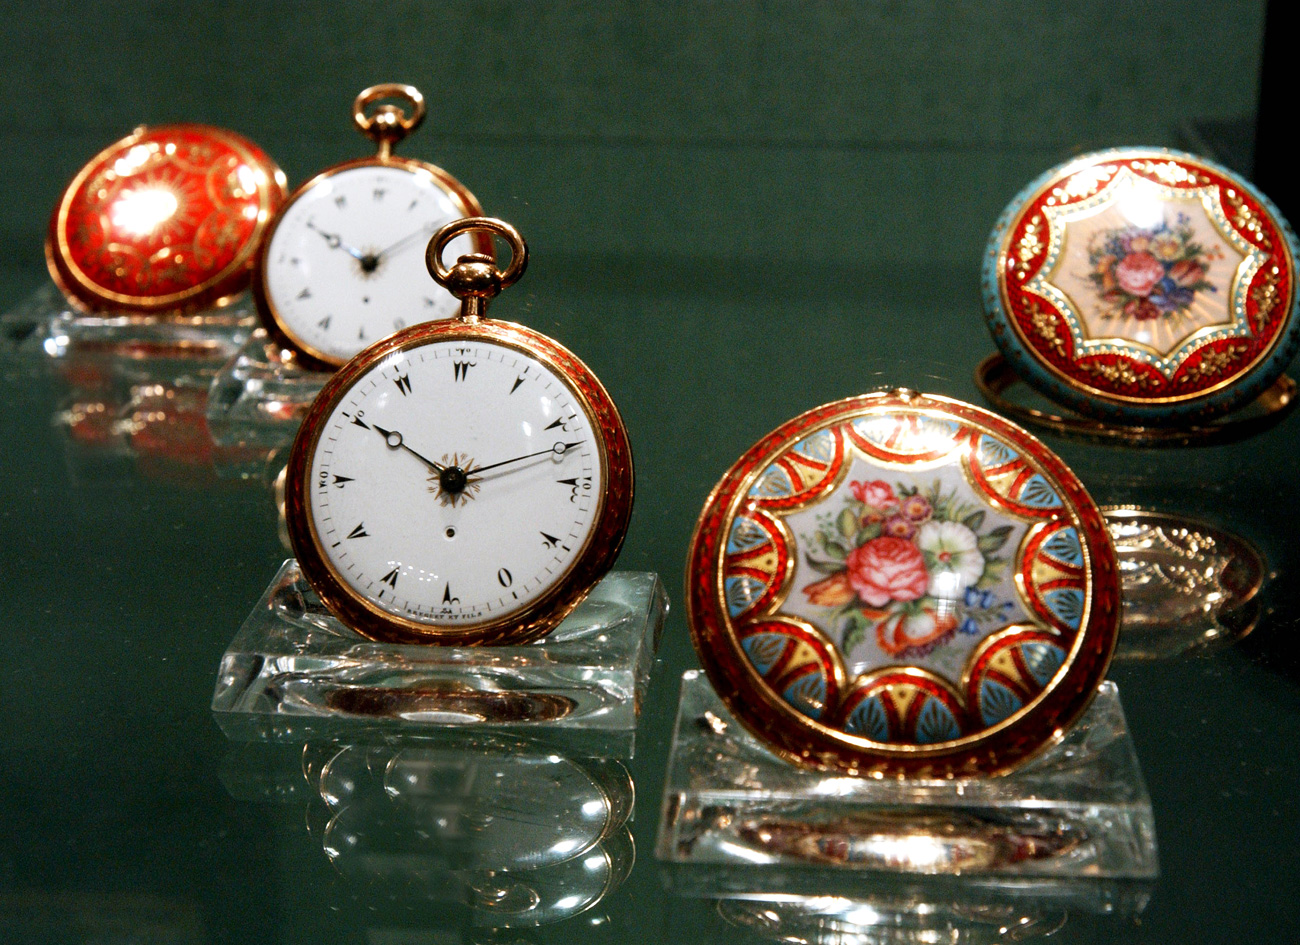 Early 19th century's clocks (in pic) are displayed at an exhibition of antique Breguet timepieces which has opened in St.Petersburg's State Hermitage Museum.